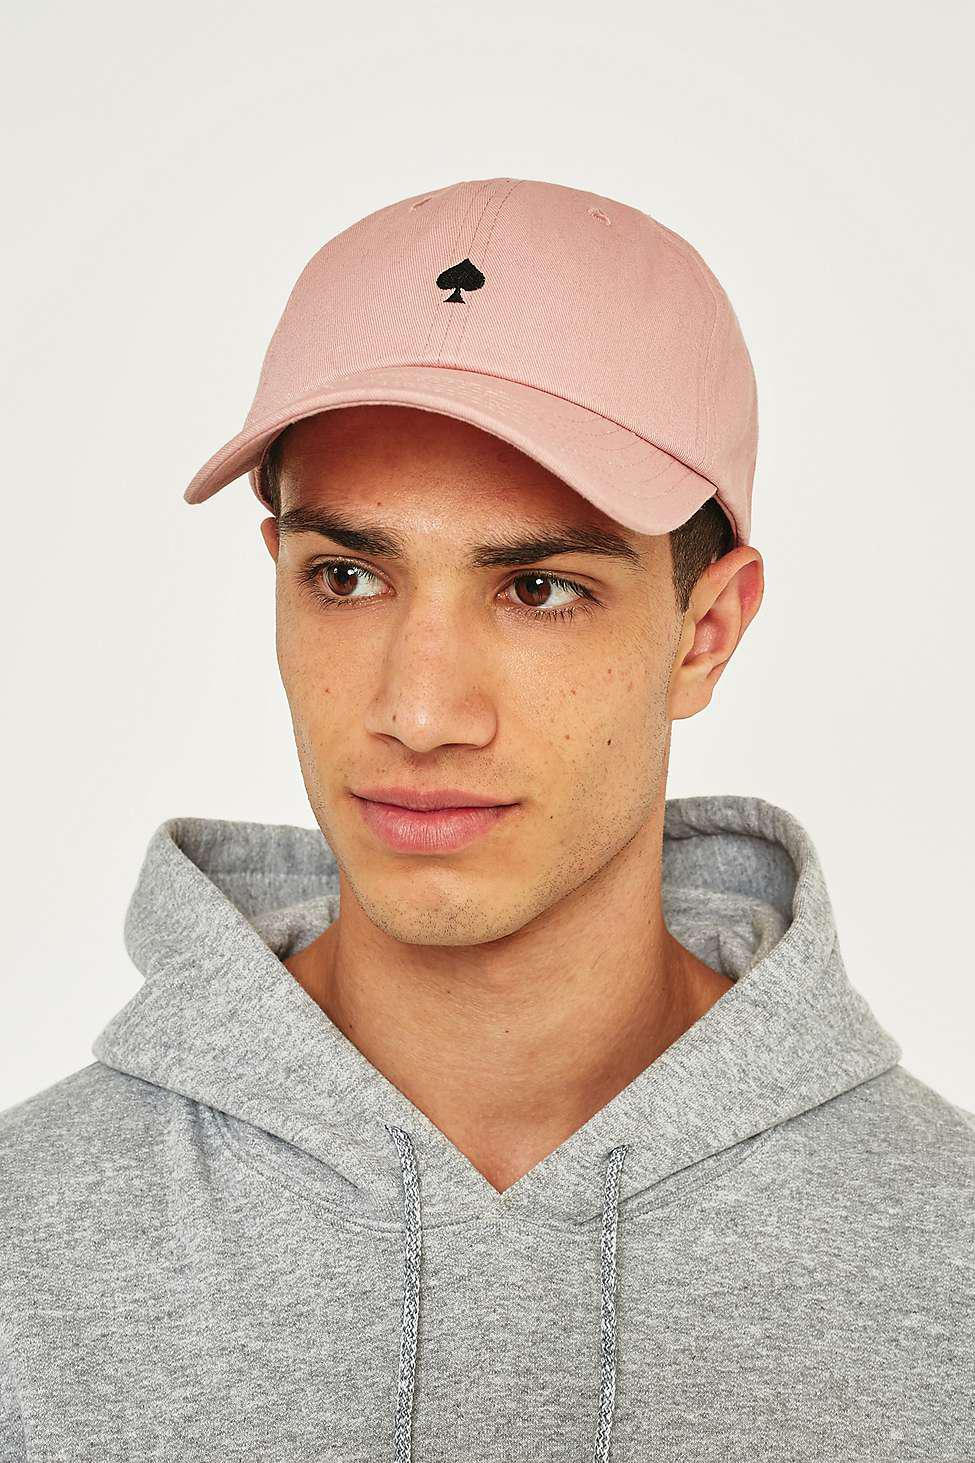 c273035ad09 Urban Outfitters Uo Dusty Pink Spade Embroidery Cap - Mens All in ...